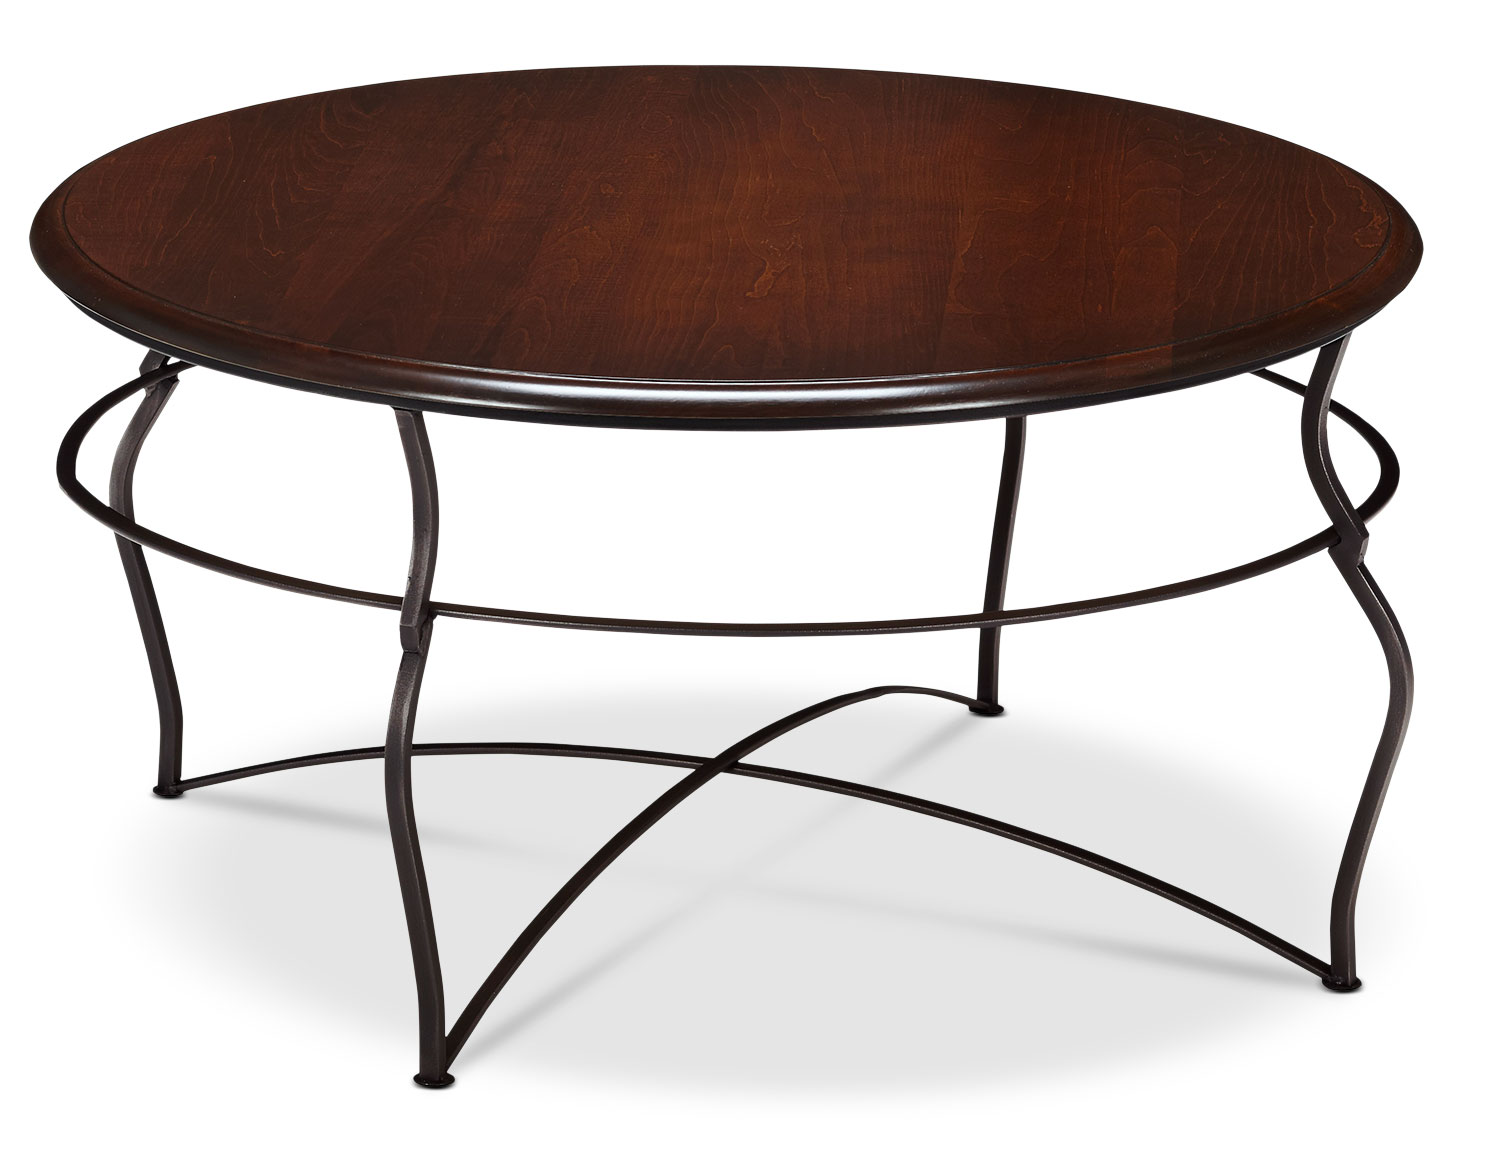 Online Only - Adele Coffee Table - Brown Cherry with Black Base